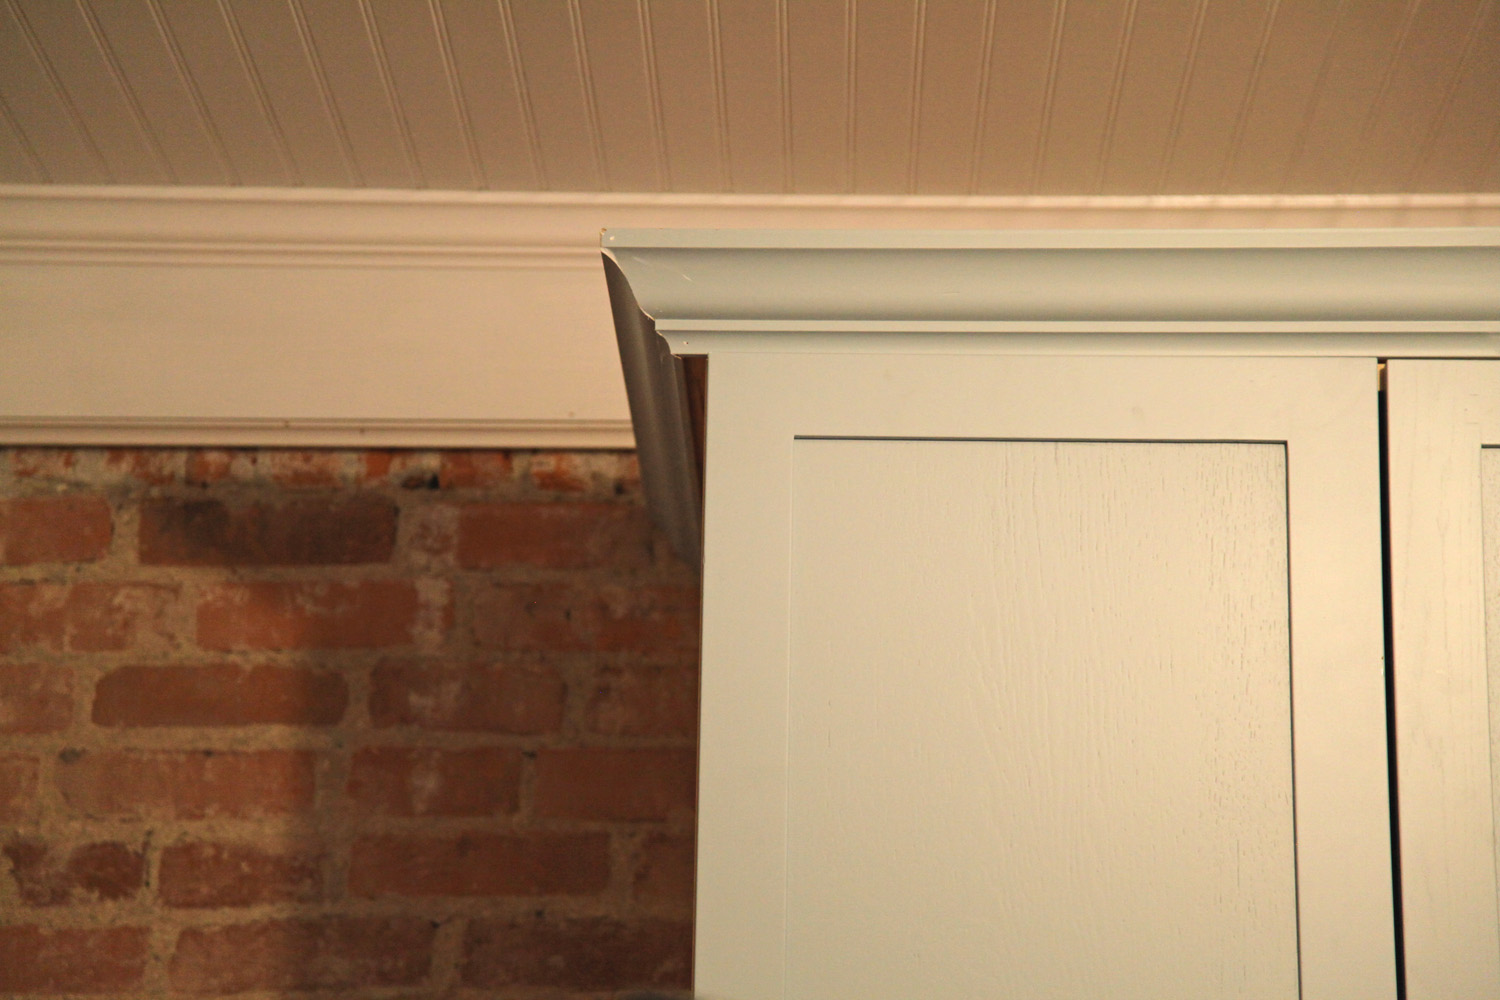 marvelous Kitchen Cabinet Door Trim Molding #4: Painted Cabinet Door w/ matching painted trim (still waiting on final touch  up on crown molding)